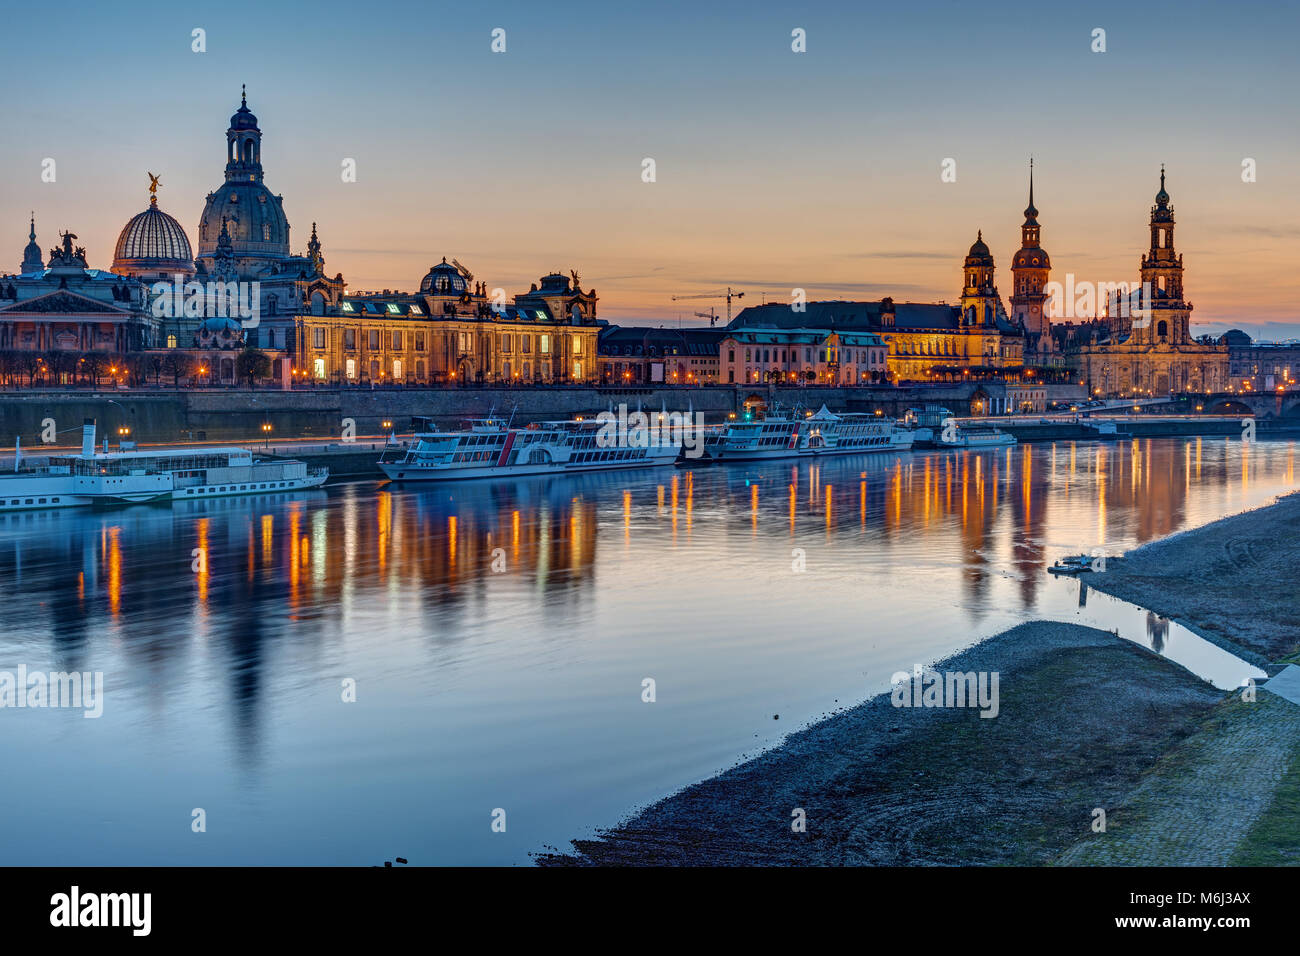 The old town of Dresden with the river Elbe after sunset - Stock Image